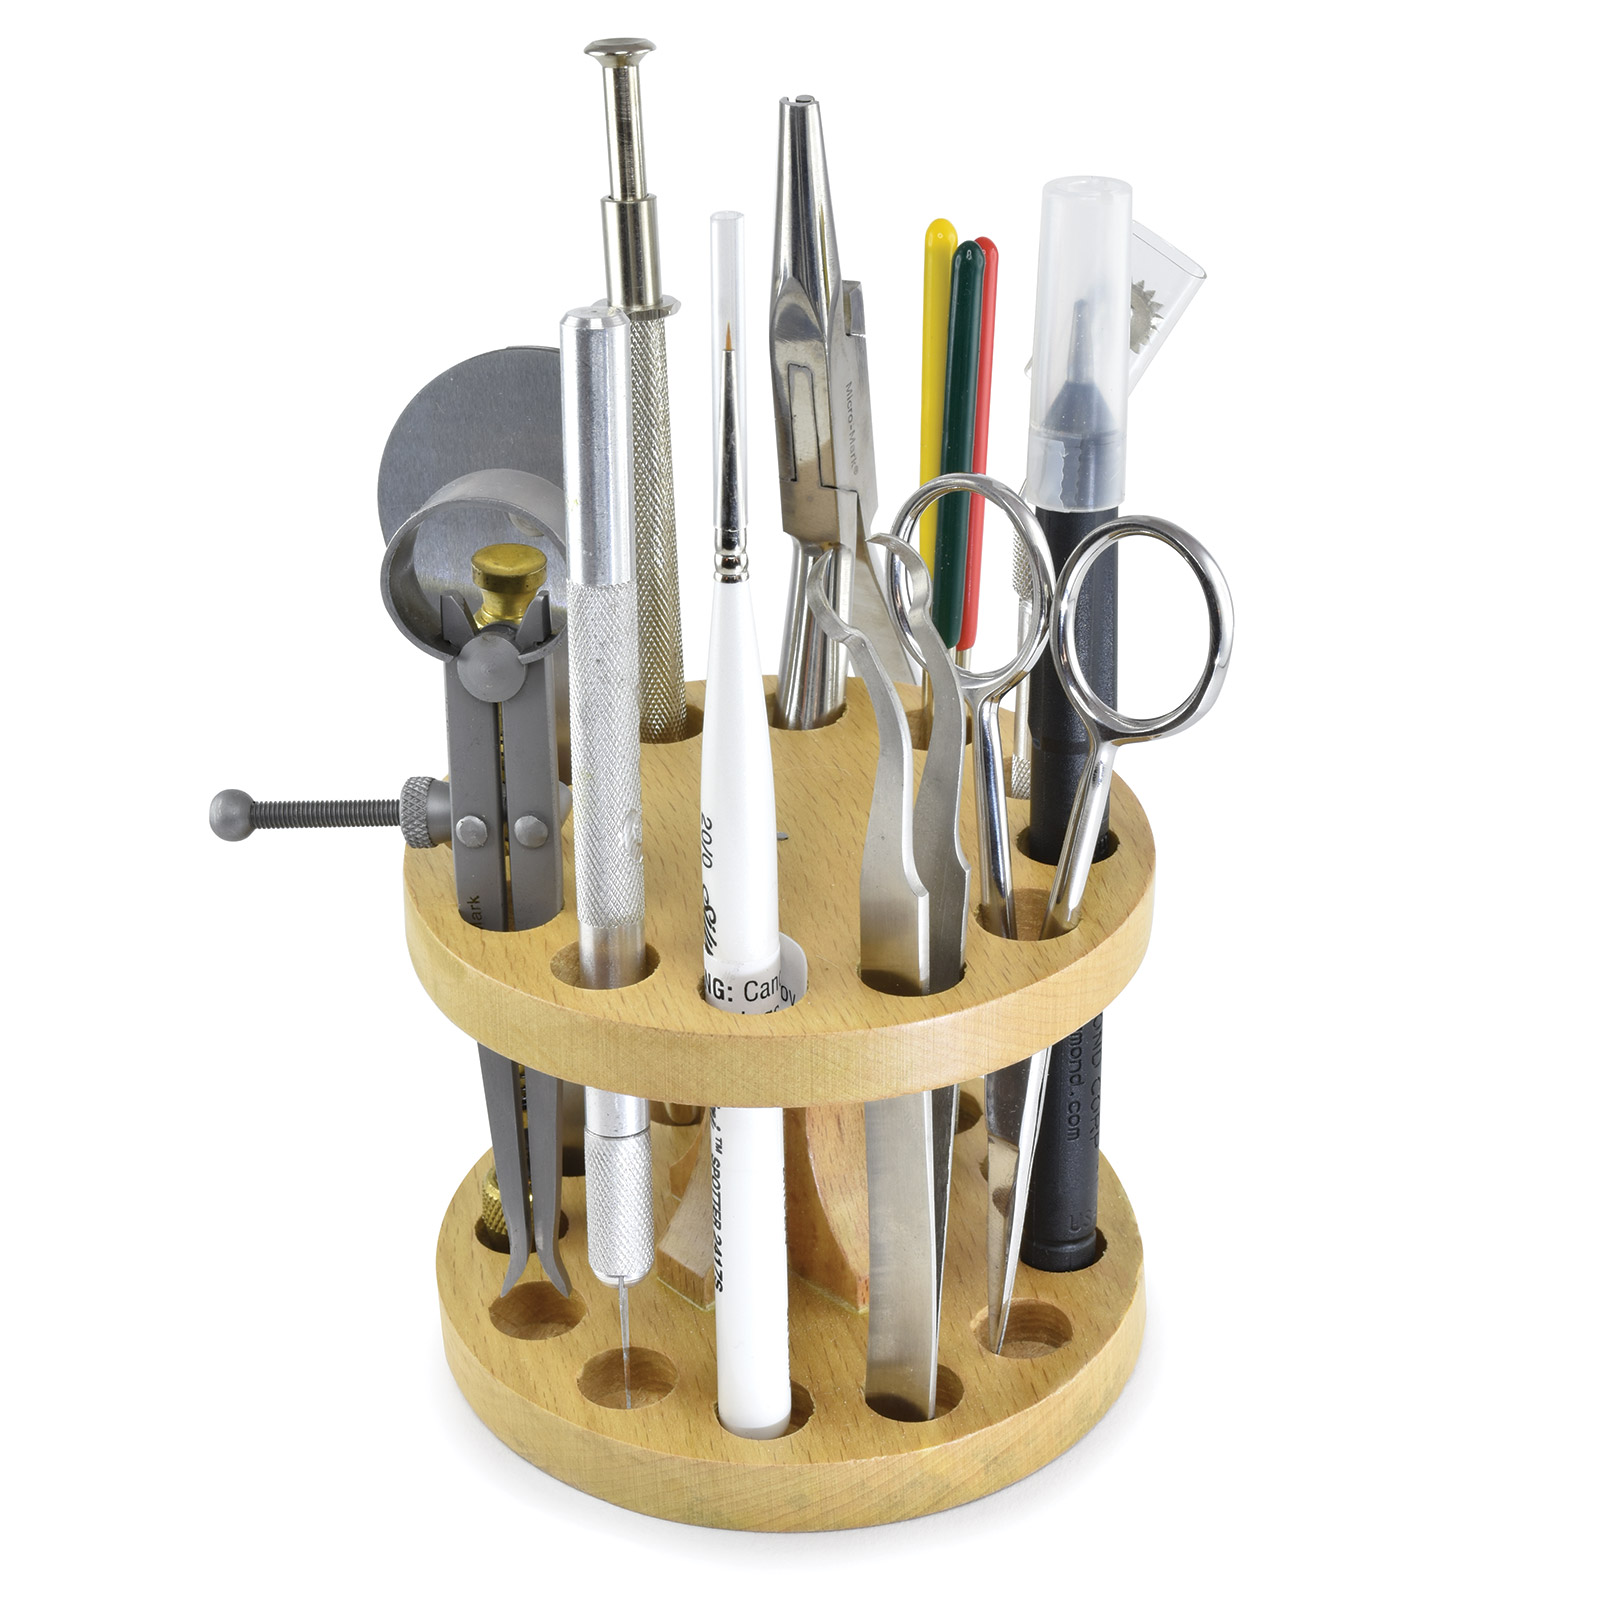 12-Space Wooden Tool Organizer